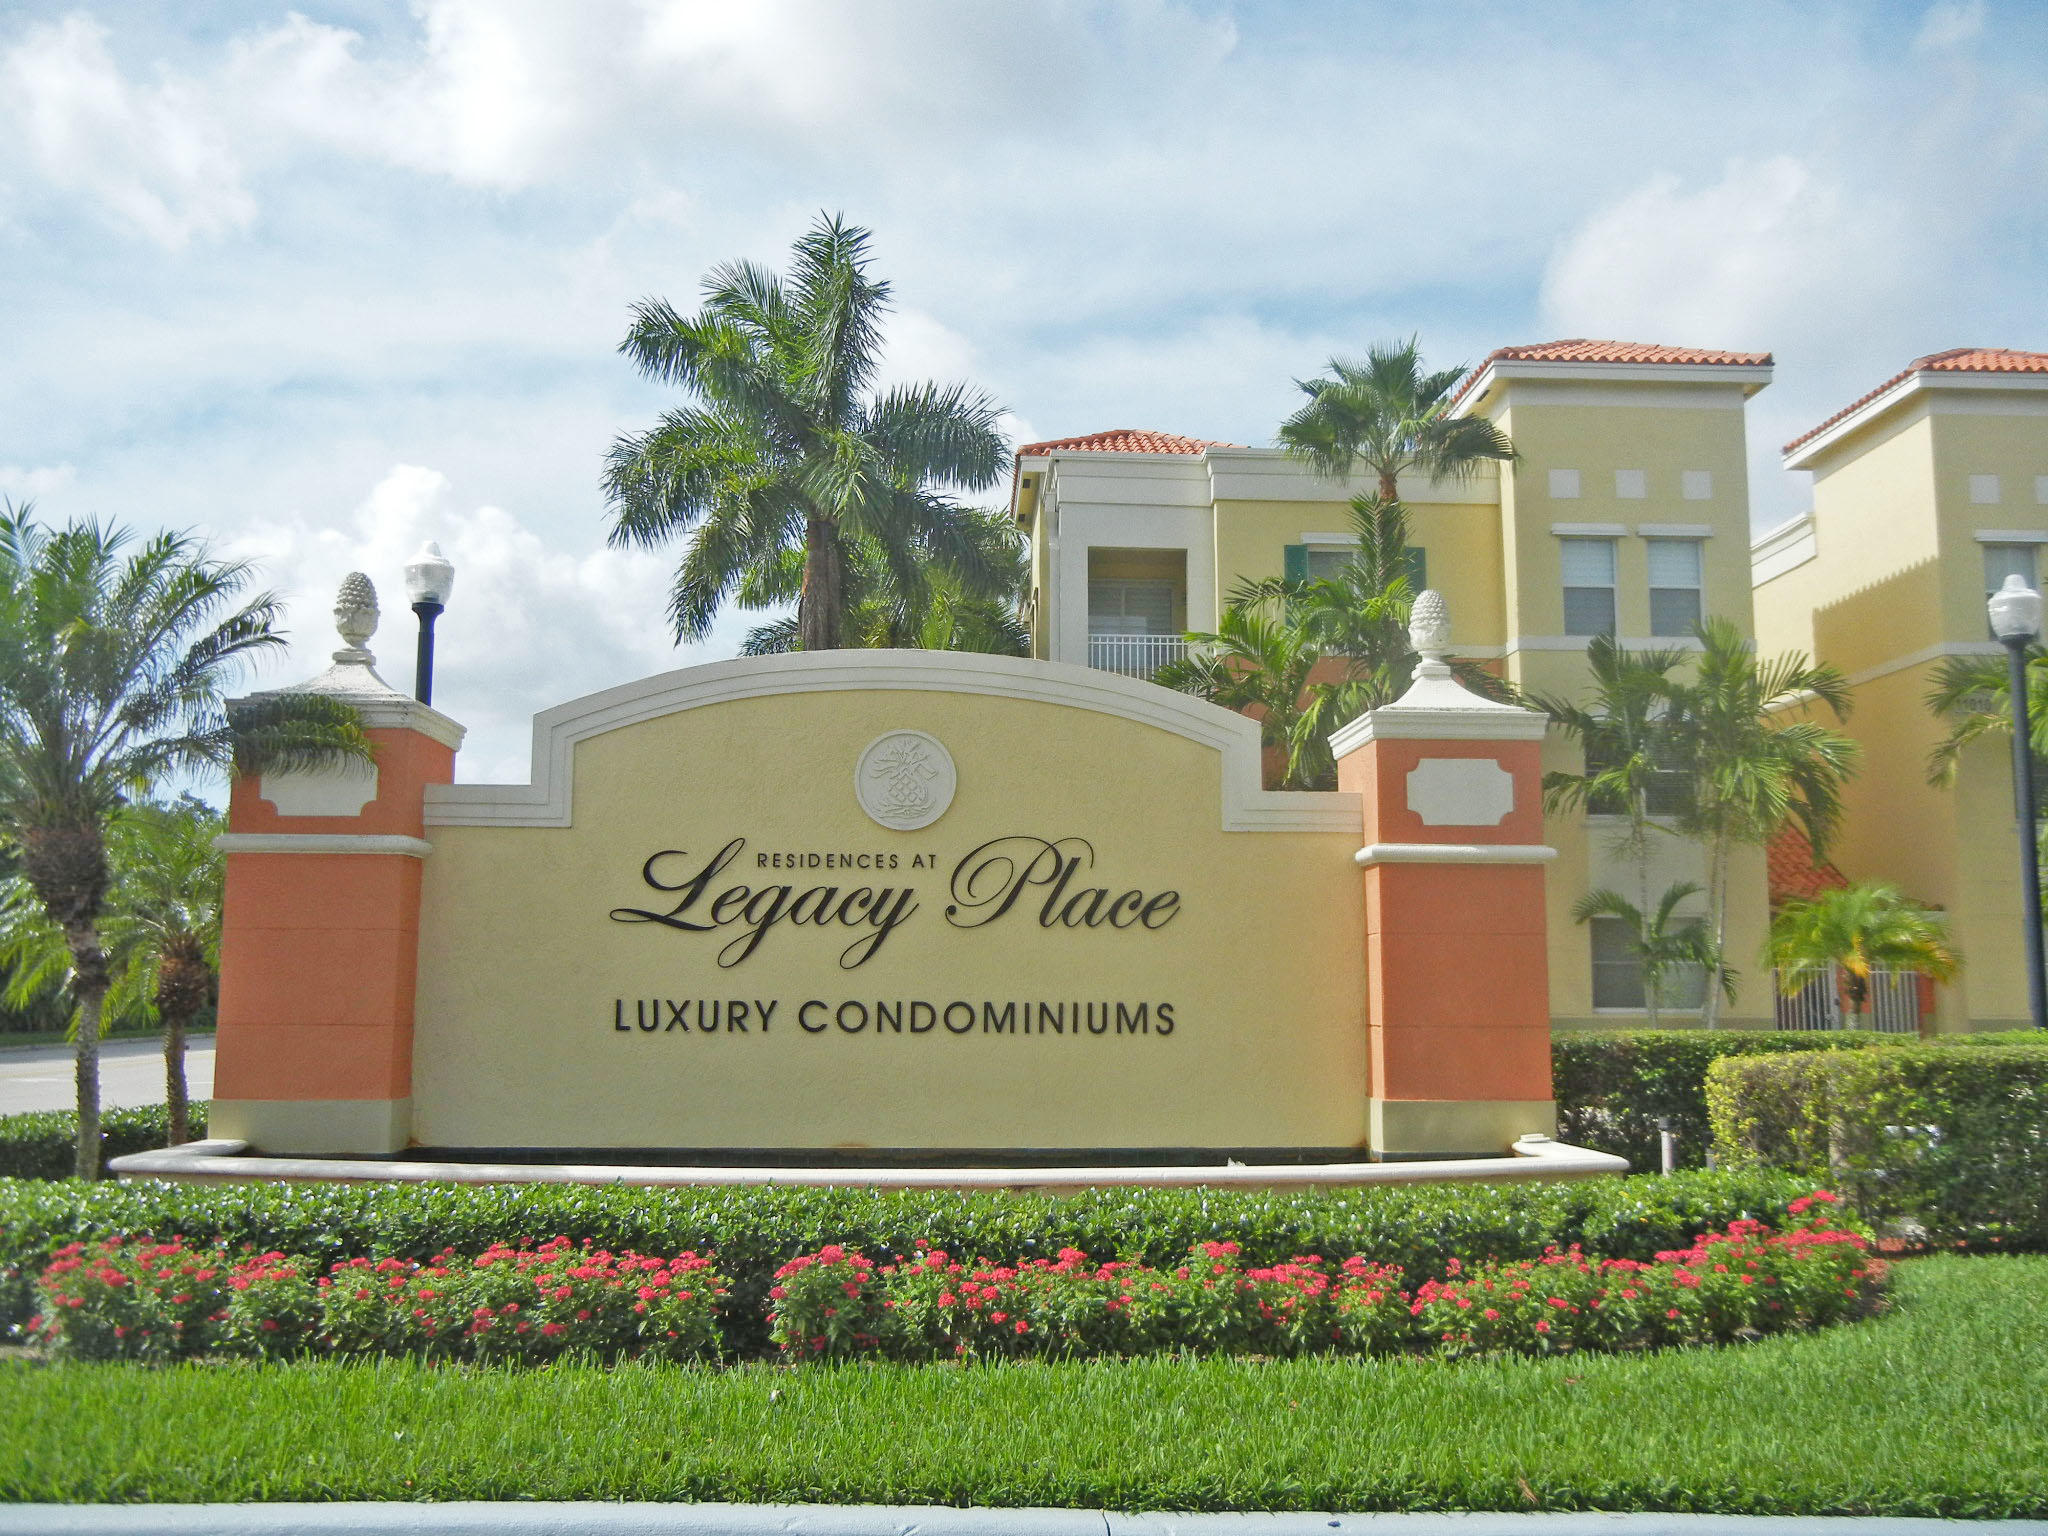 LEGACY PLACE REAL ESTATE